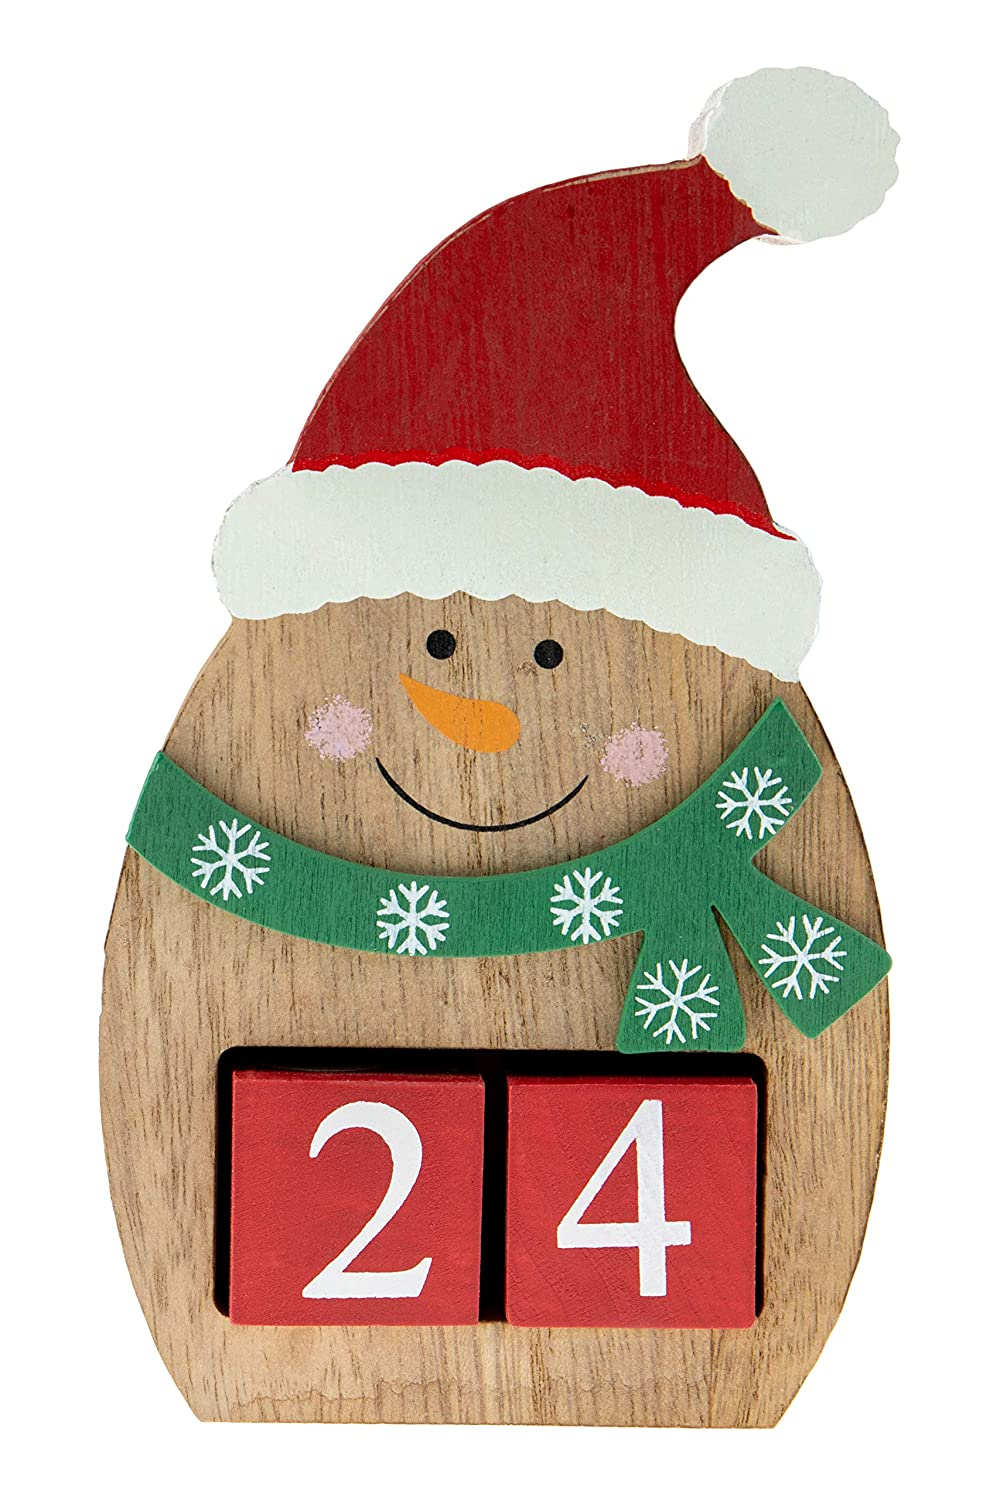 Count Down Snowman Advent Calendar Blocks | Days Until Christmas | 100% Wood Build | Red, White, and Brown Snow Man | Measures 4' x 6.5' | Perfect for Tables and Shelves | Premium Holiday Décor Clever Creations